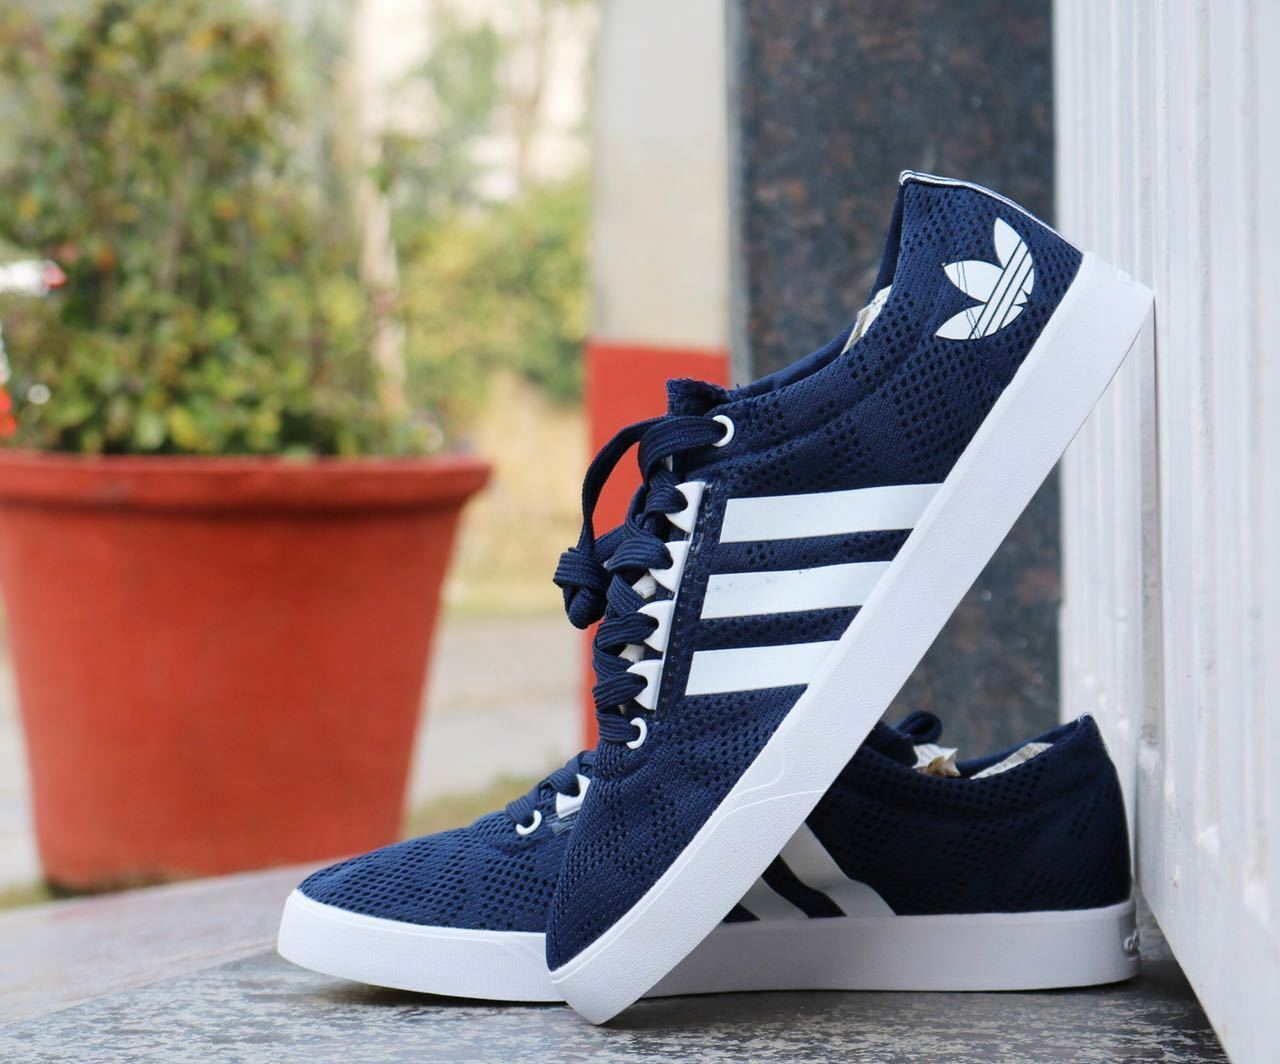 huge selection of 70755 eca51 coupon code for adidas neo 2 sneakers d8747 dc9f1  coupon for neo sneakers  b8ac1 2c7df